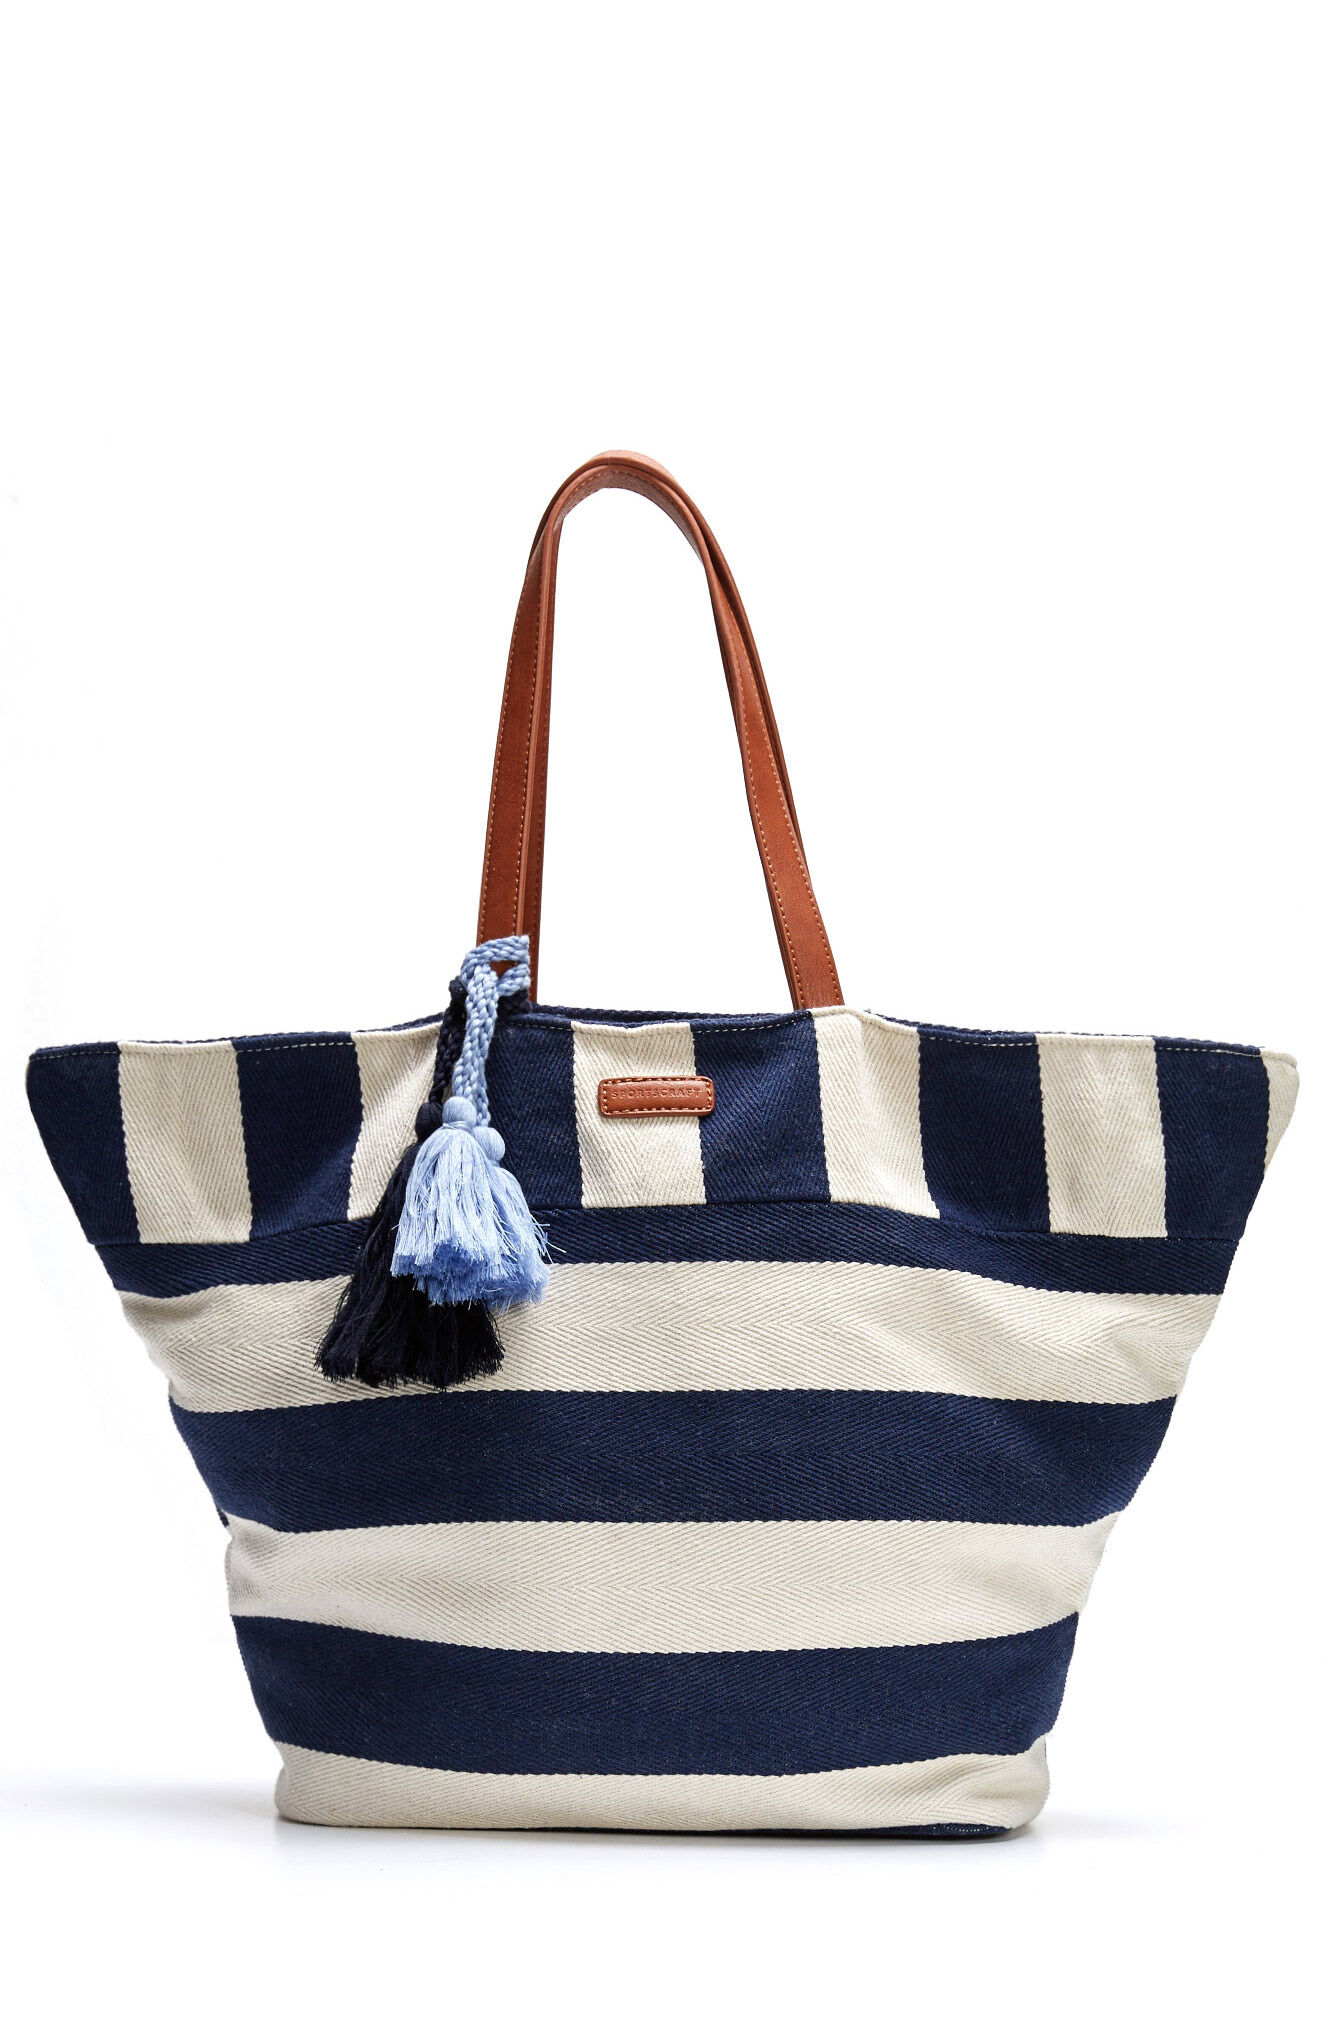 NEW-Sportscraft-WOMENS-Angie-Canvas-Tote-Women-039-s-Bags